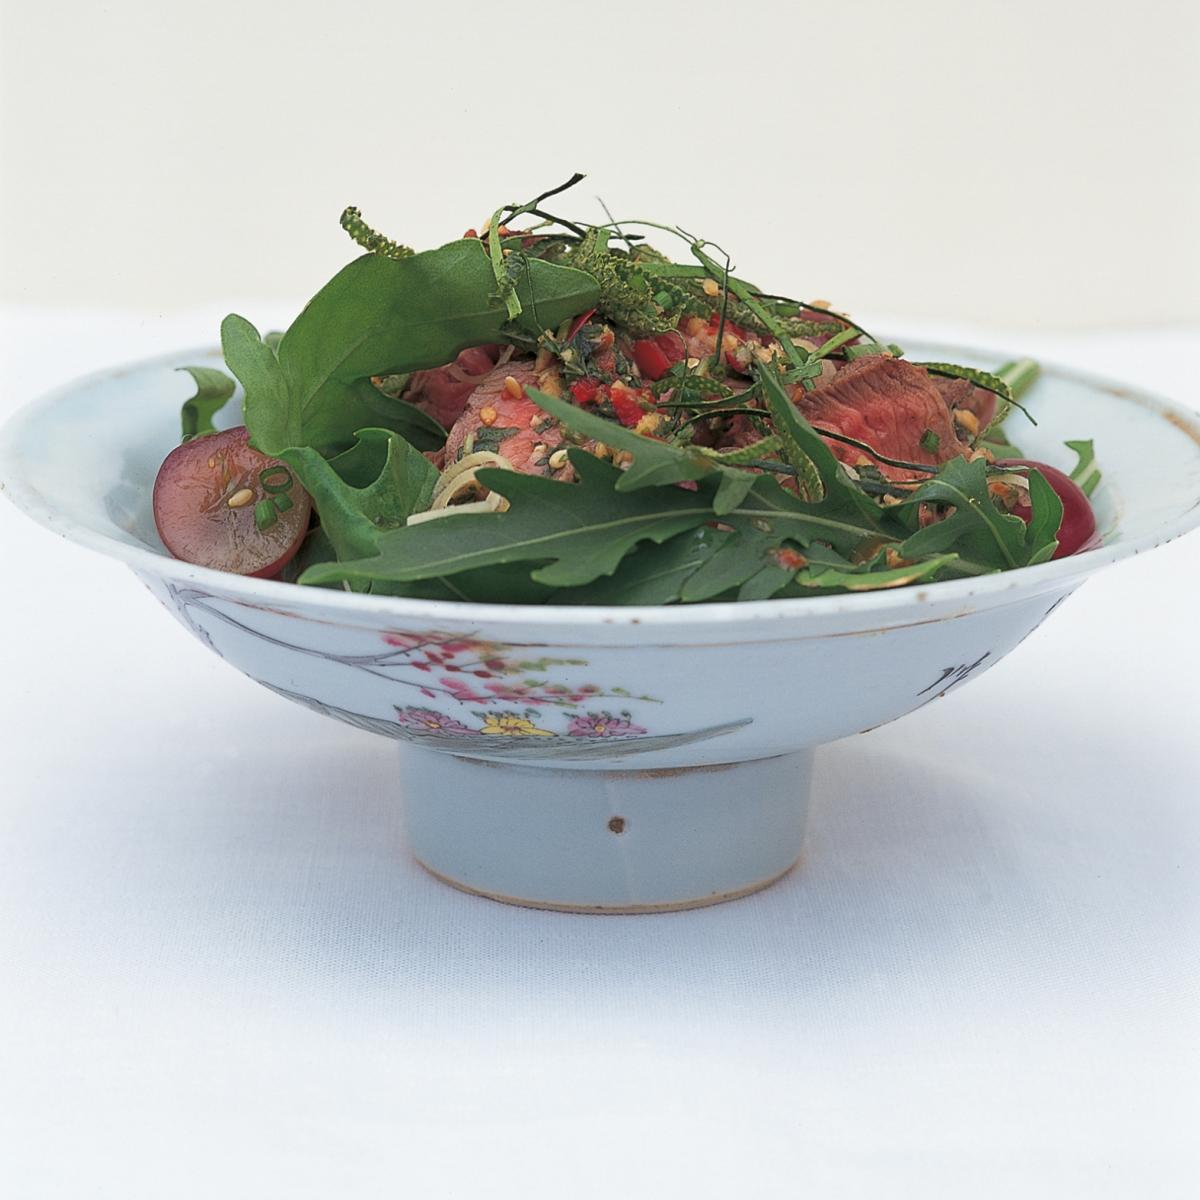 Htc thai grilled beef salad with grapes